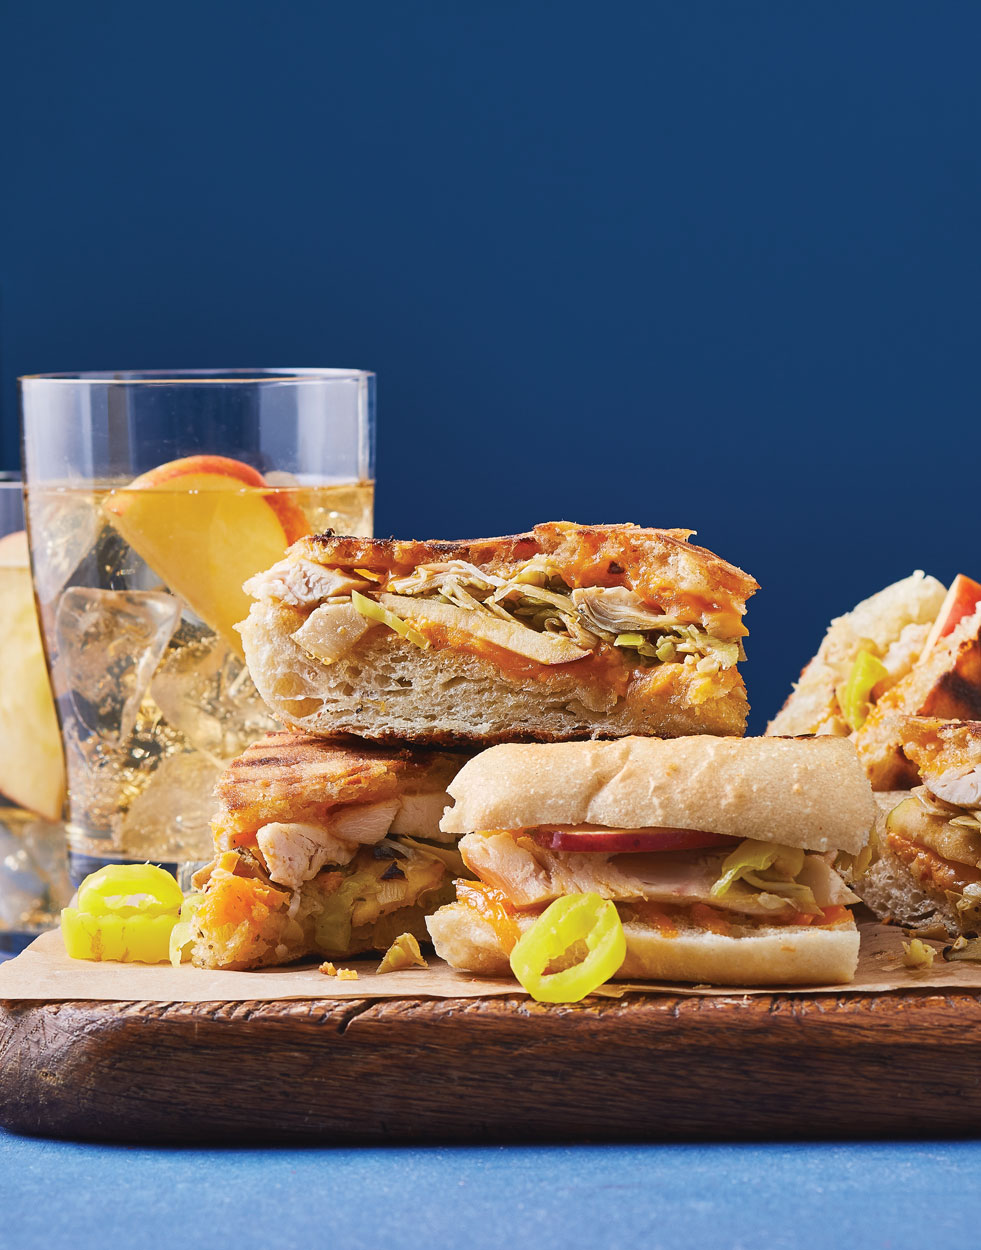 Chicken-Cheddar Panini with Artichokes & Apples